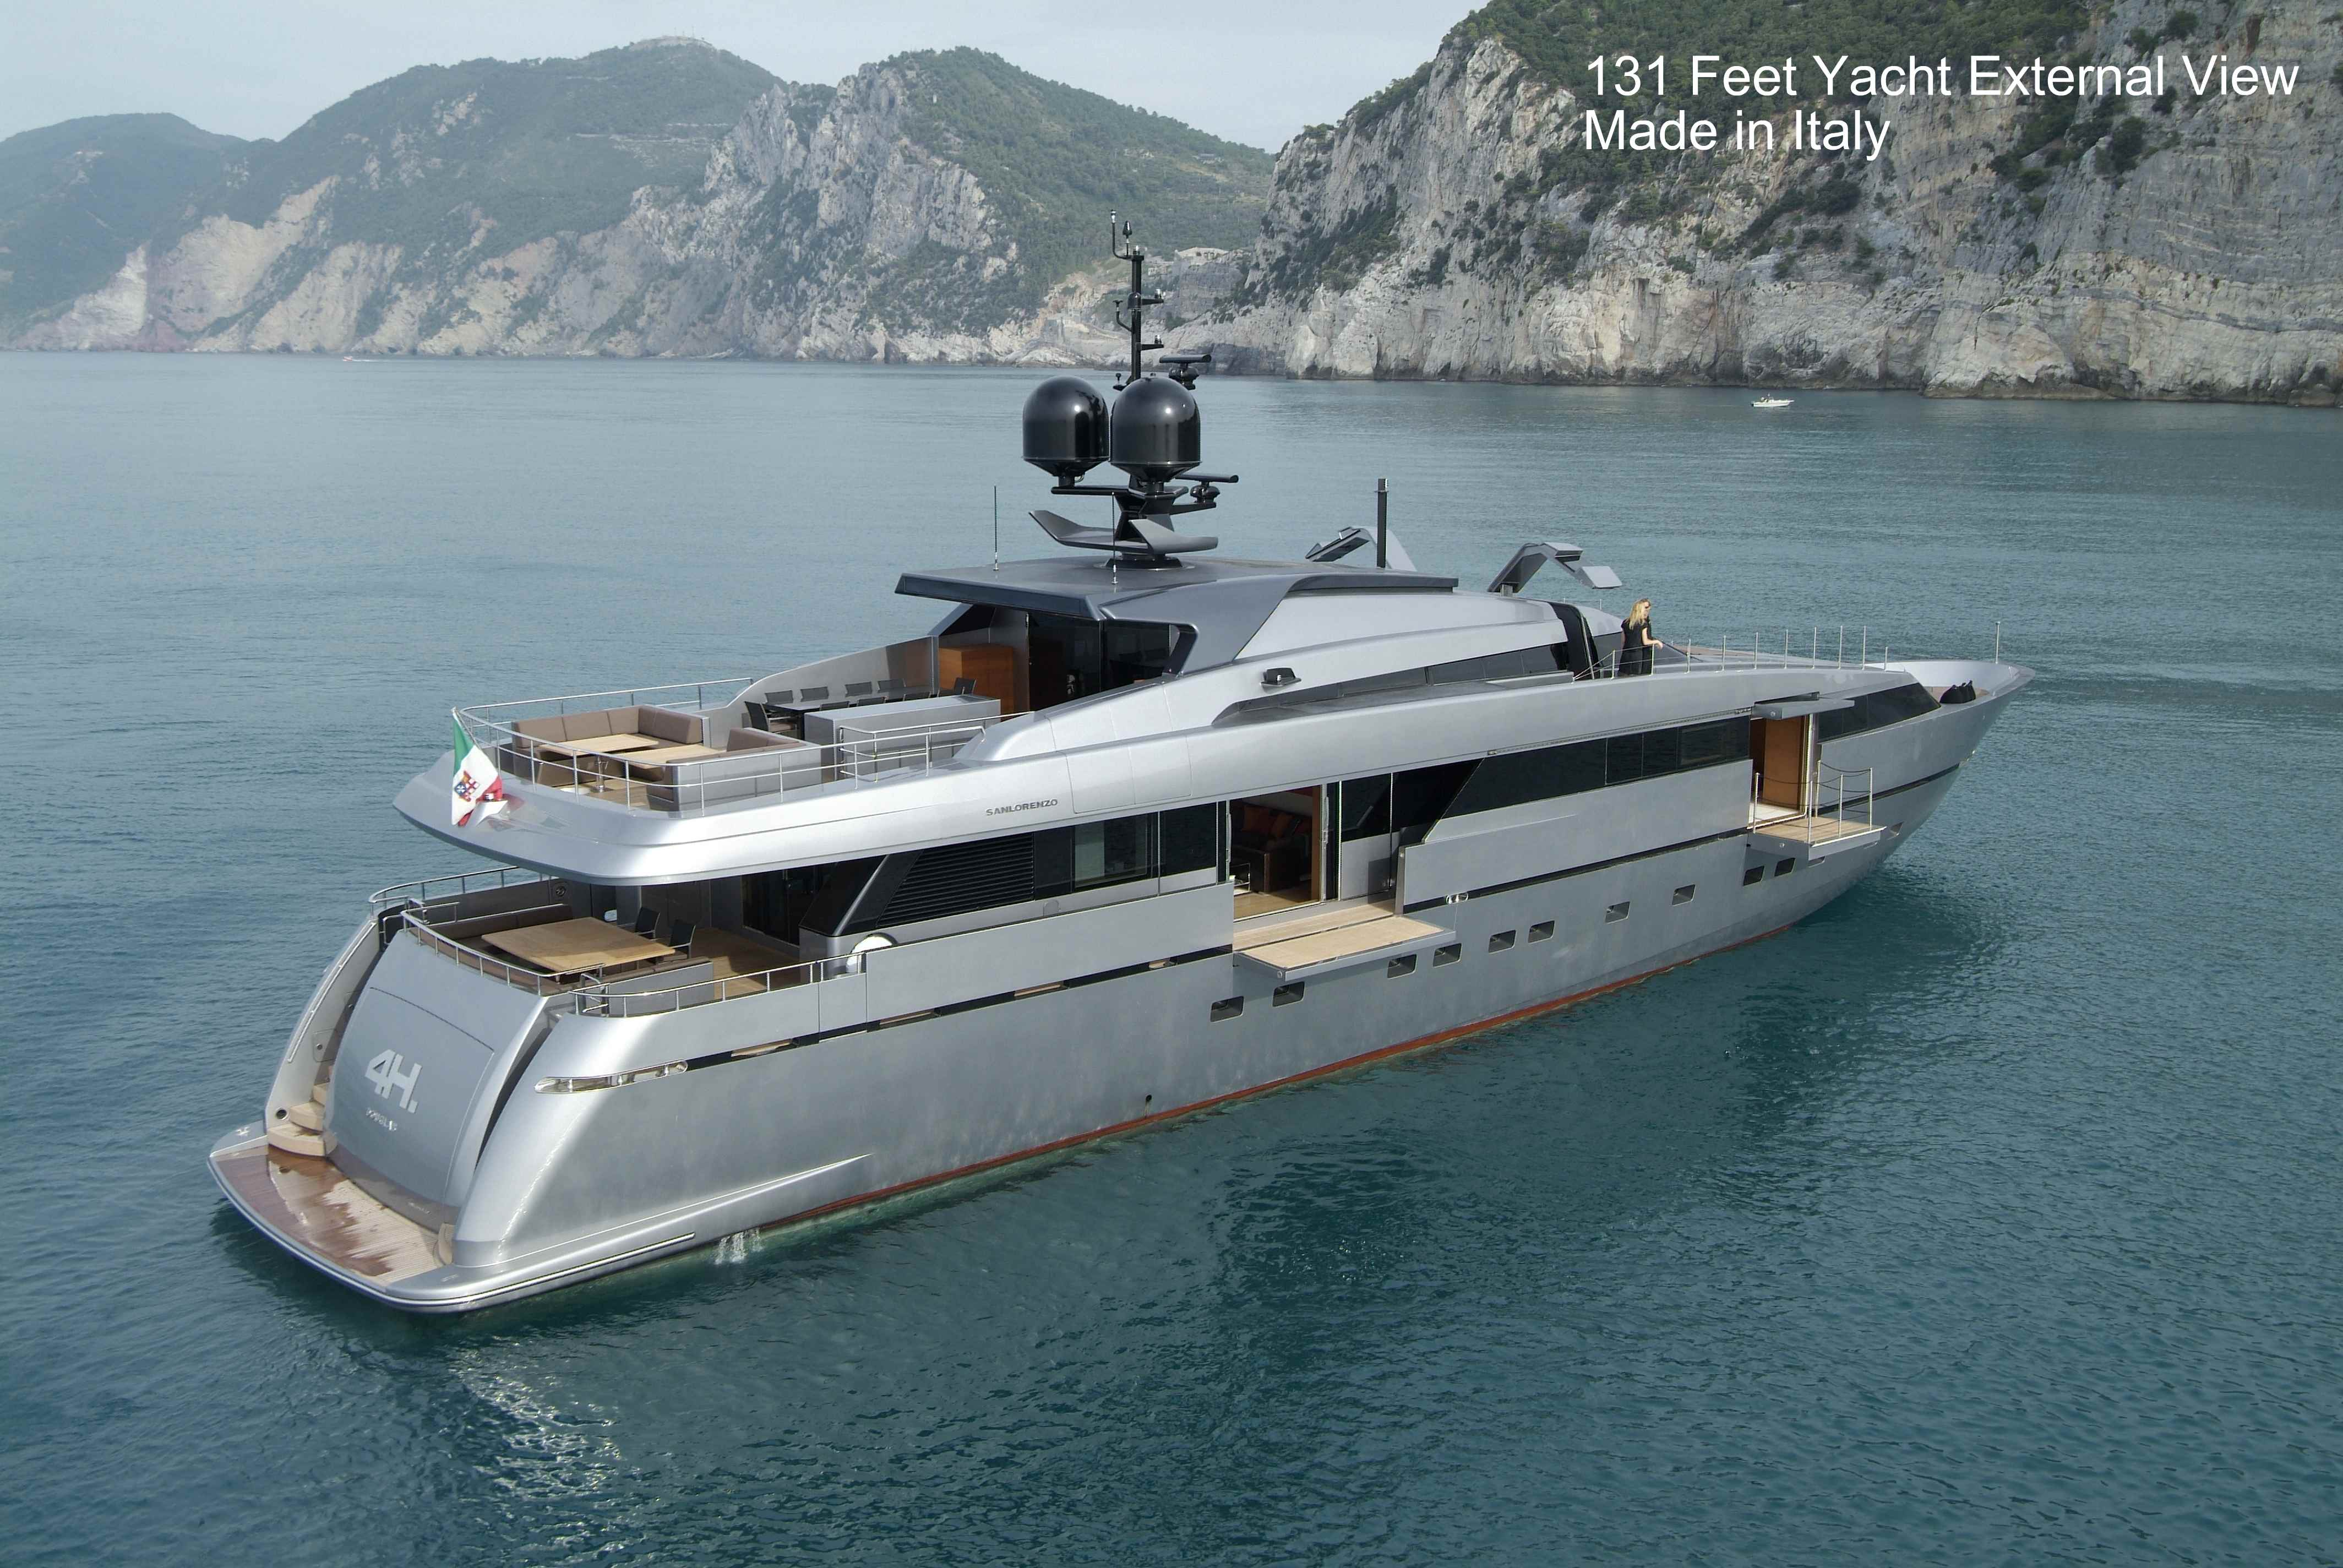 I m a boater Email me yachts and information